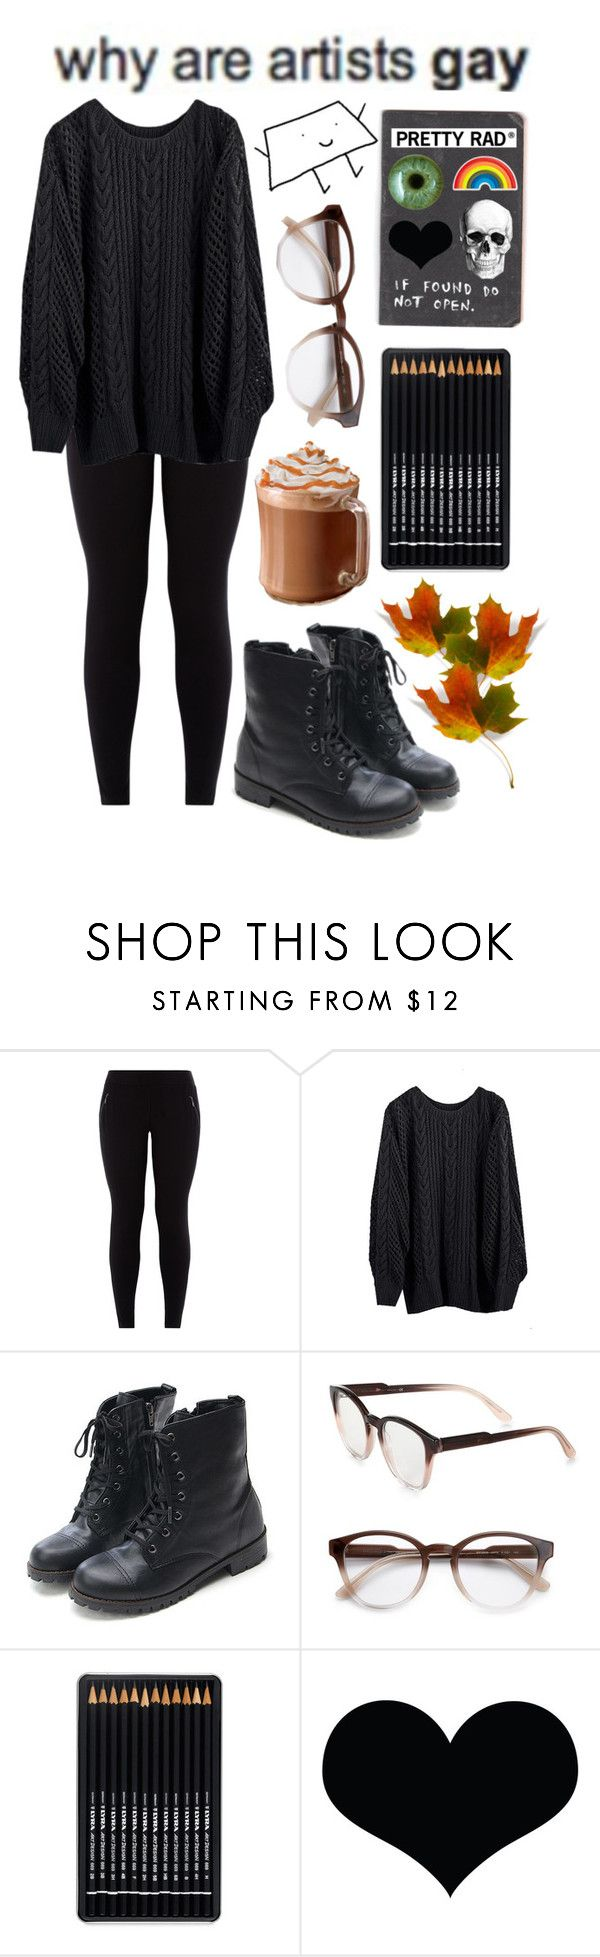 """Autumn Art Kid"" by spnlex ❤ liked on Polyvore featuring New Look, STELLA McCARTNEY and Anya Hindmarch"